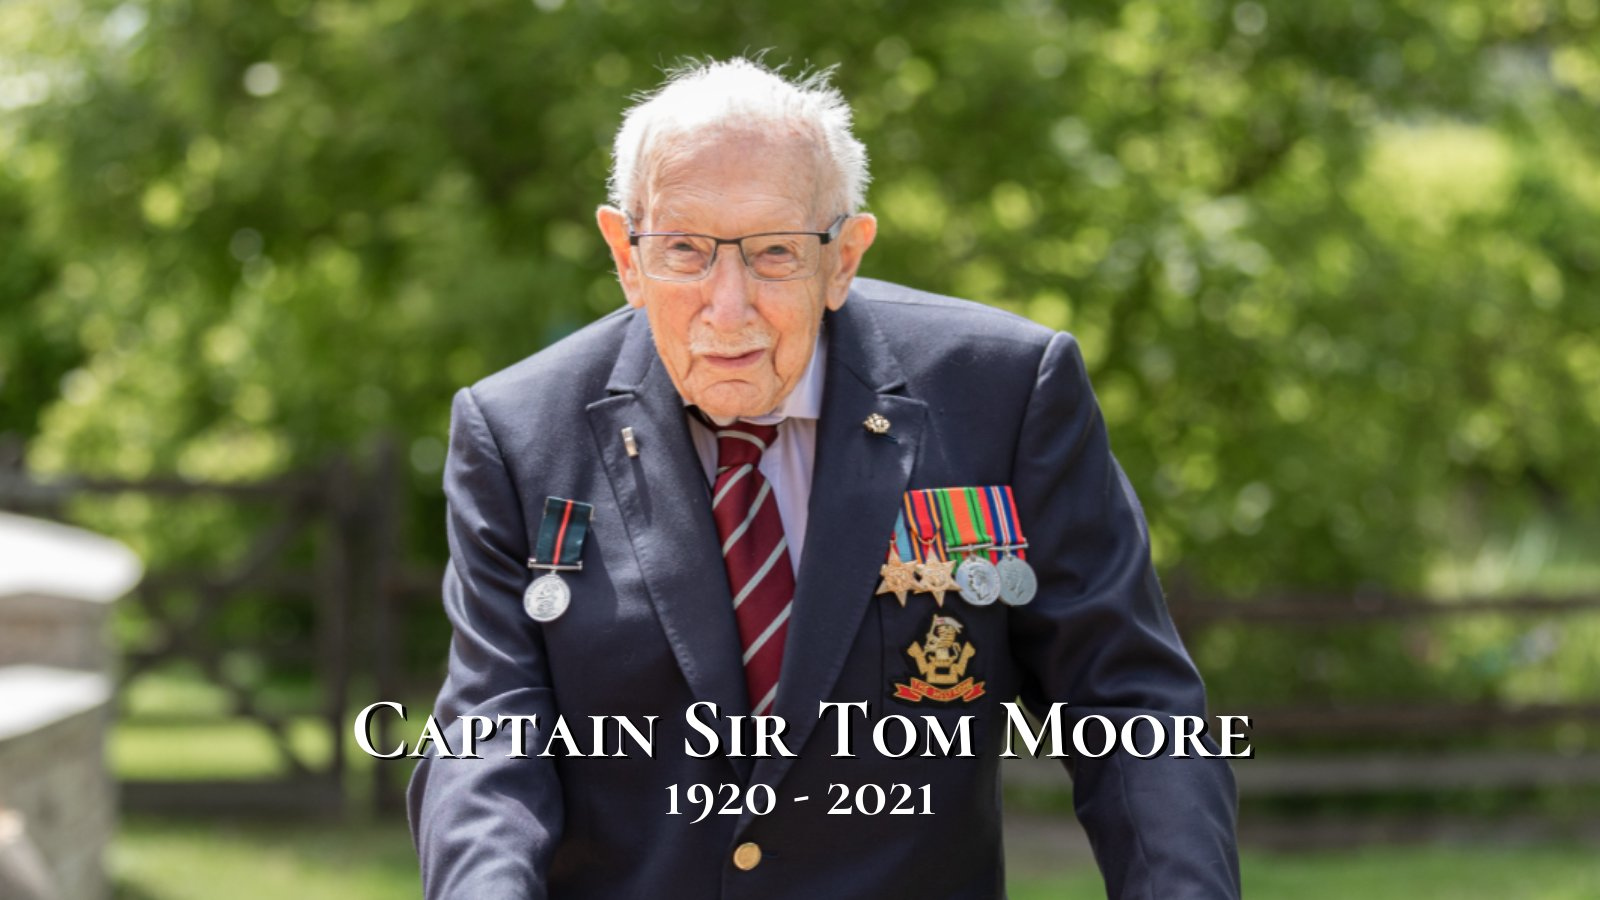 100-Year-Old Veteran Who Raised Millions For UK Health Workers Dies of COVID-19